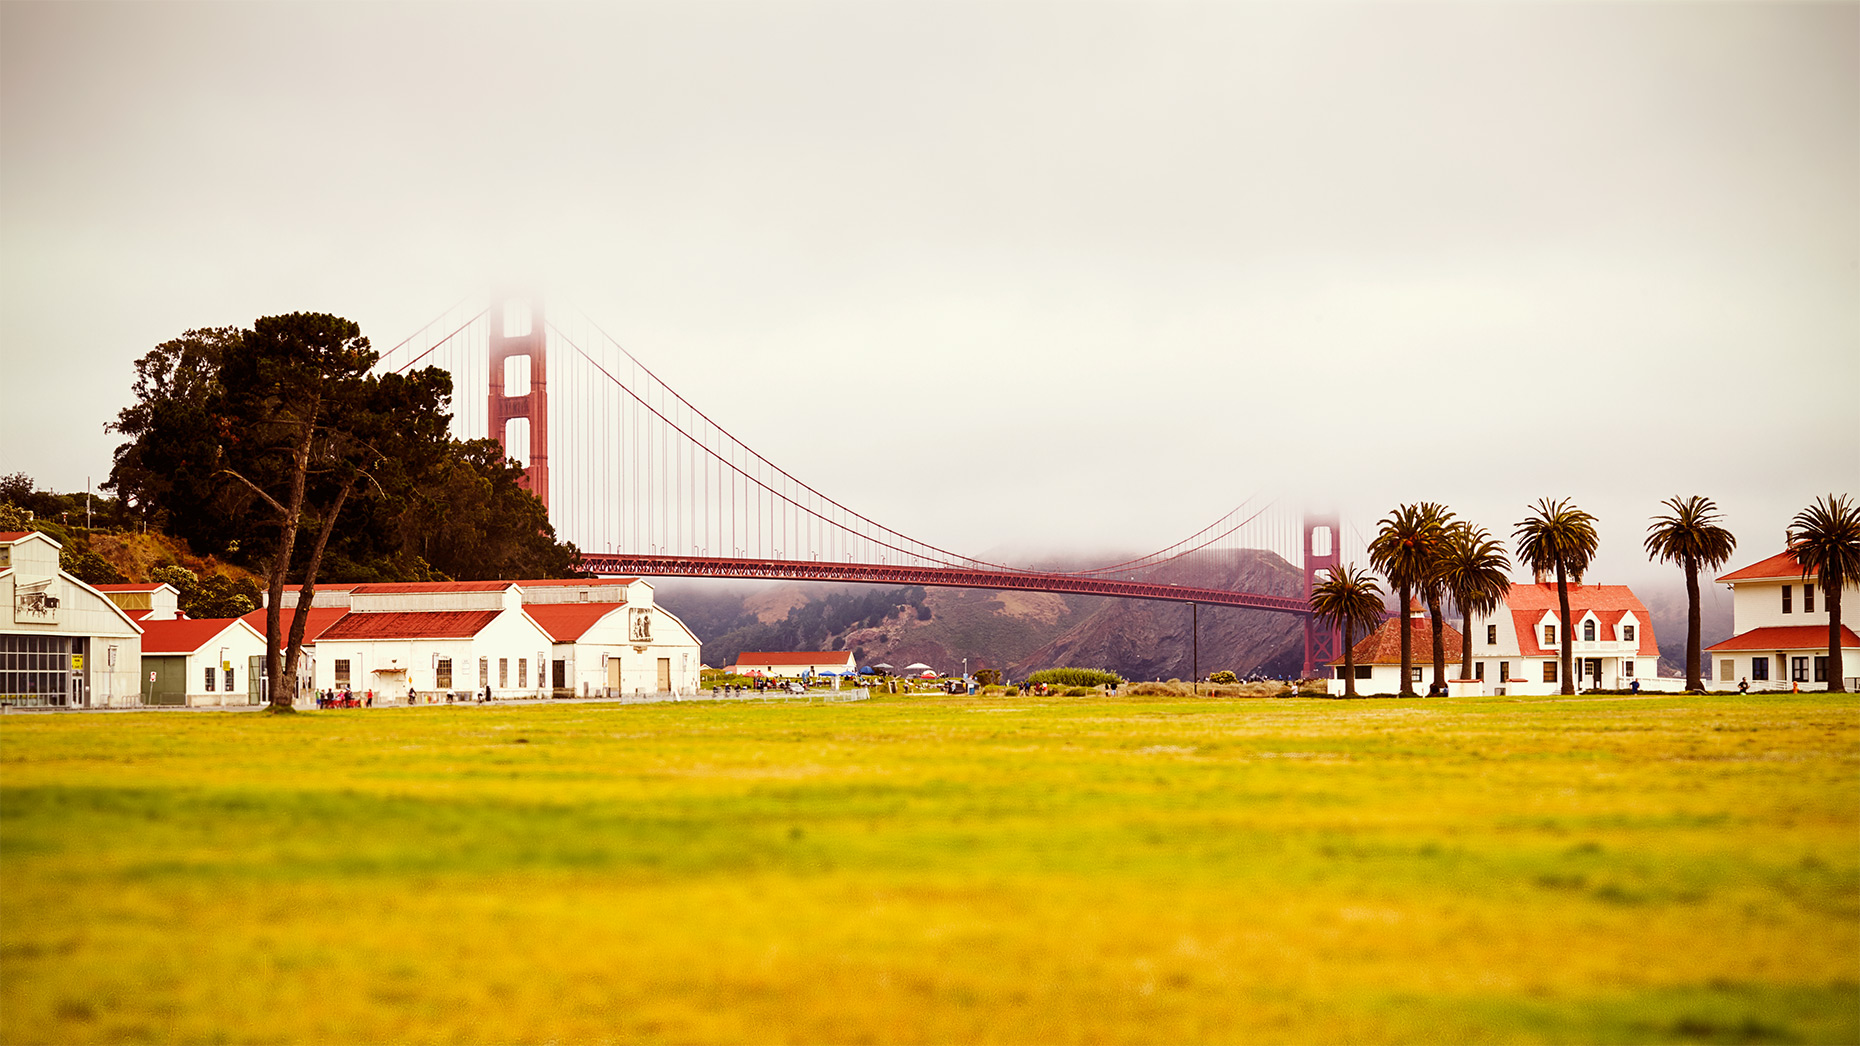 Crissy Field and Golden Gate Bridge in San Francisco